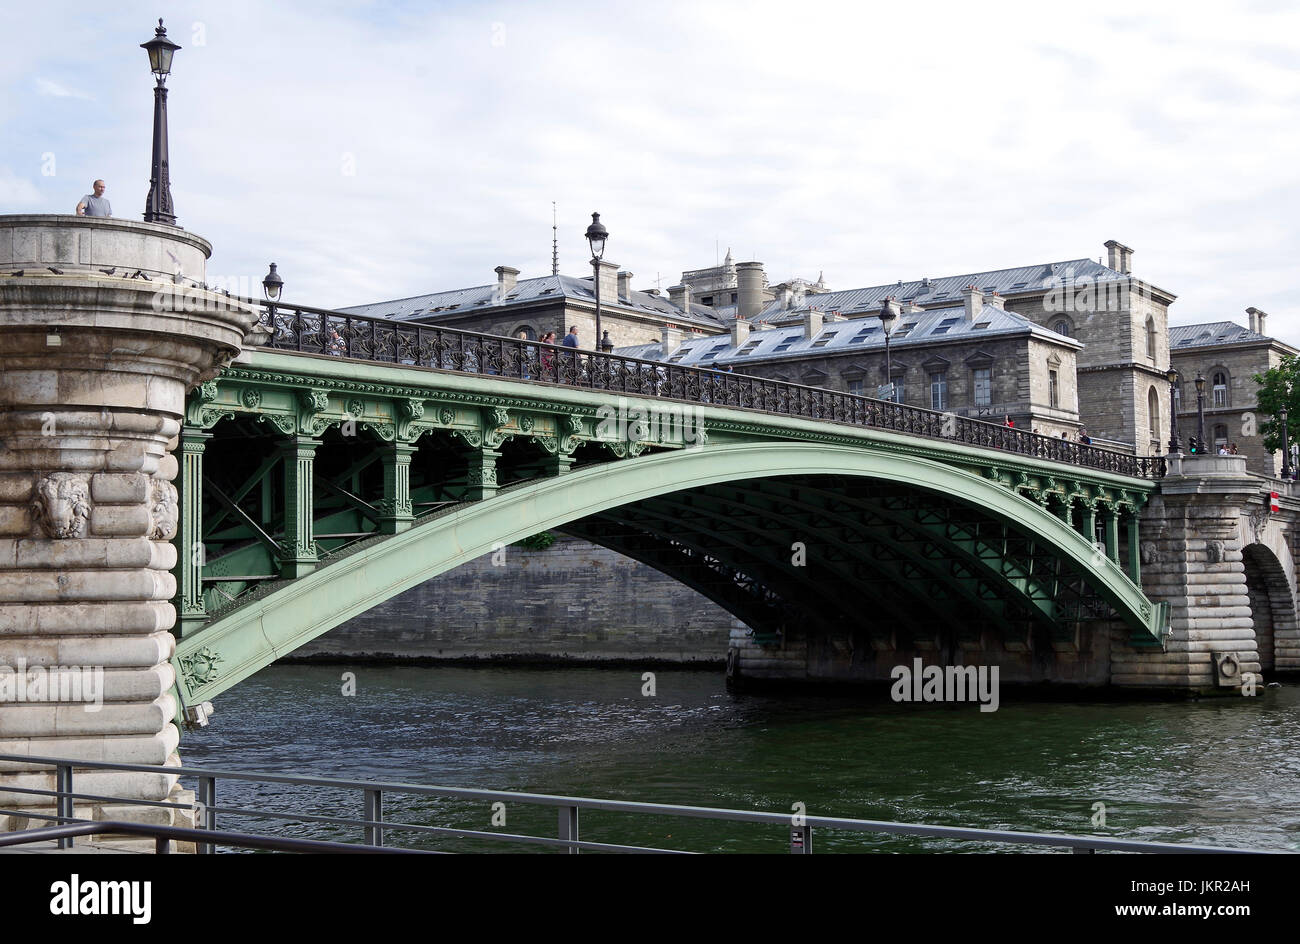 Paris, France, Pont Notre Dame, over the river Seine, linking the Right Bank at Quai de Gesvres to Ile de la Cité, Stock Photo